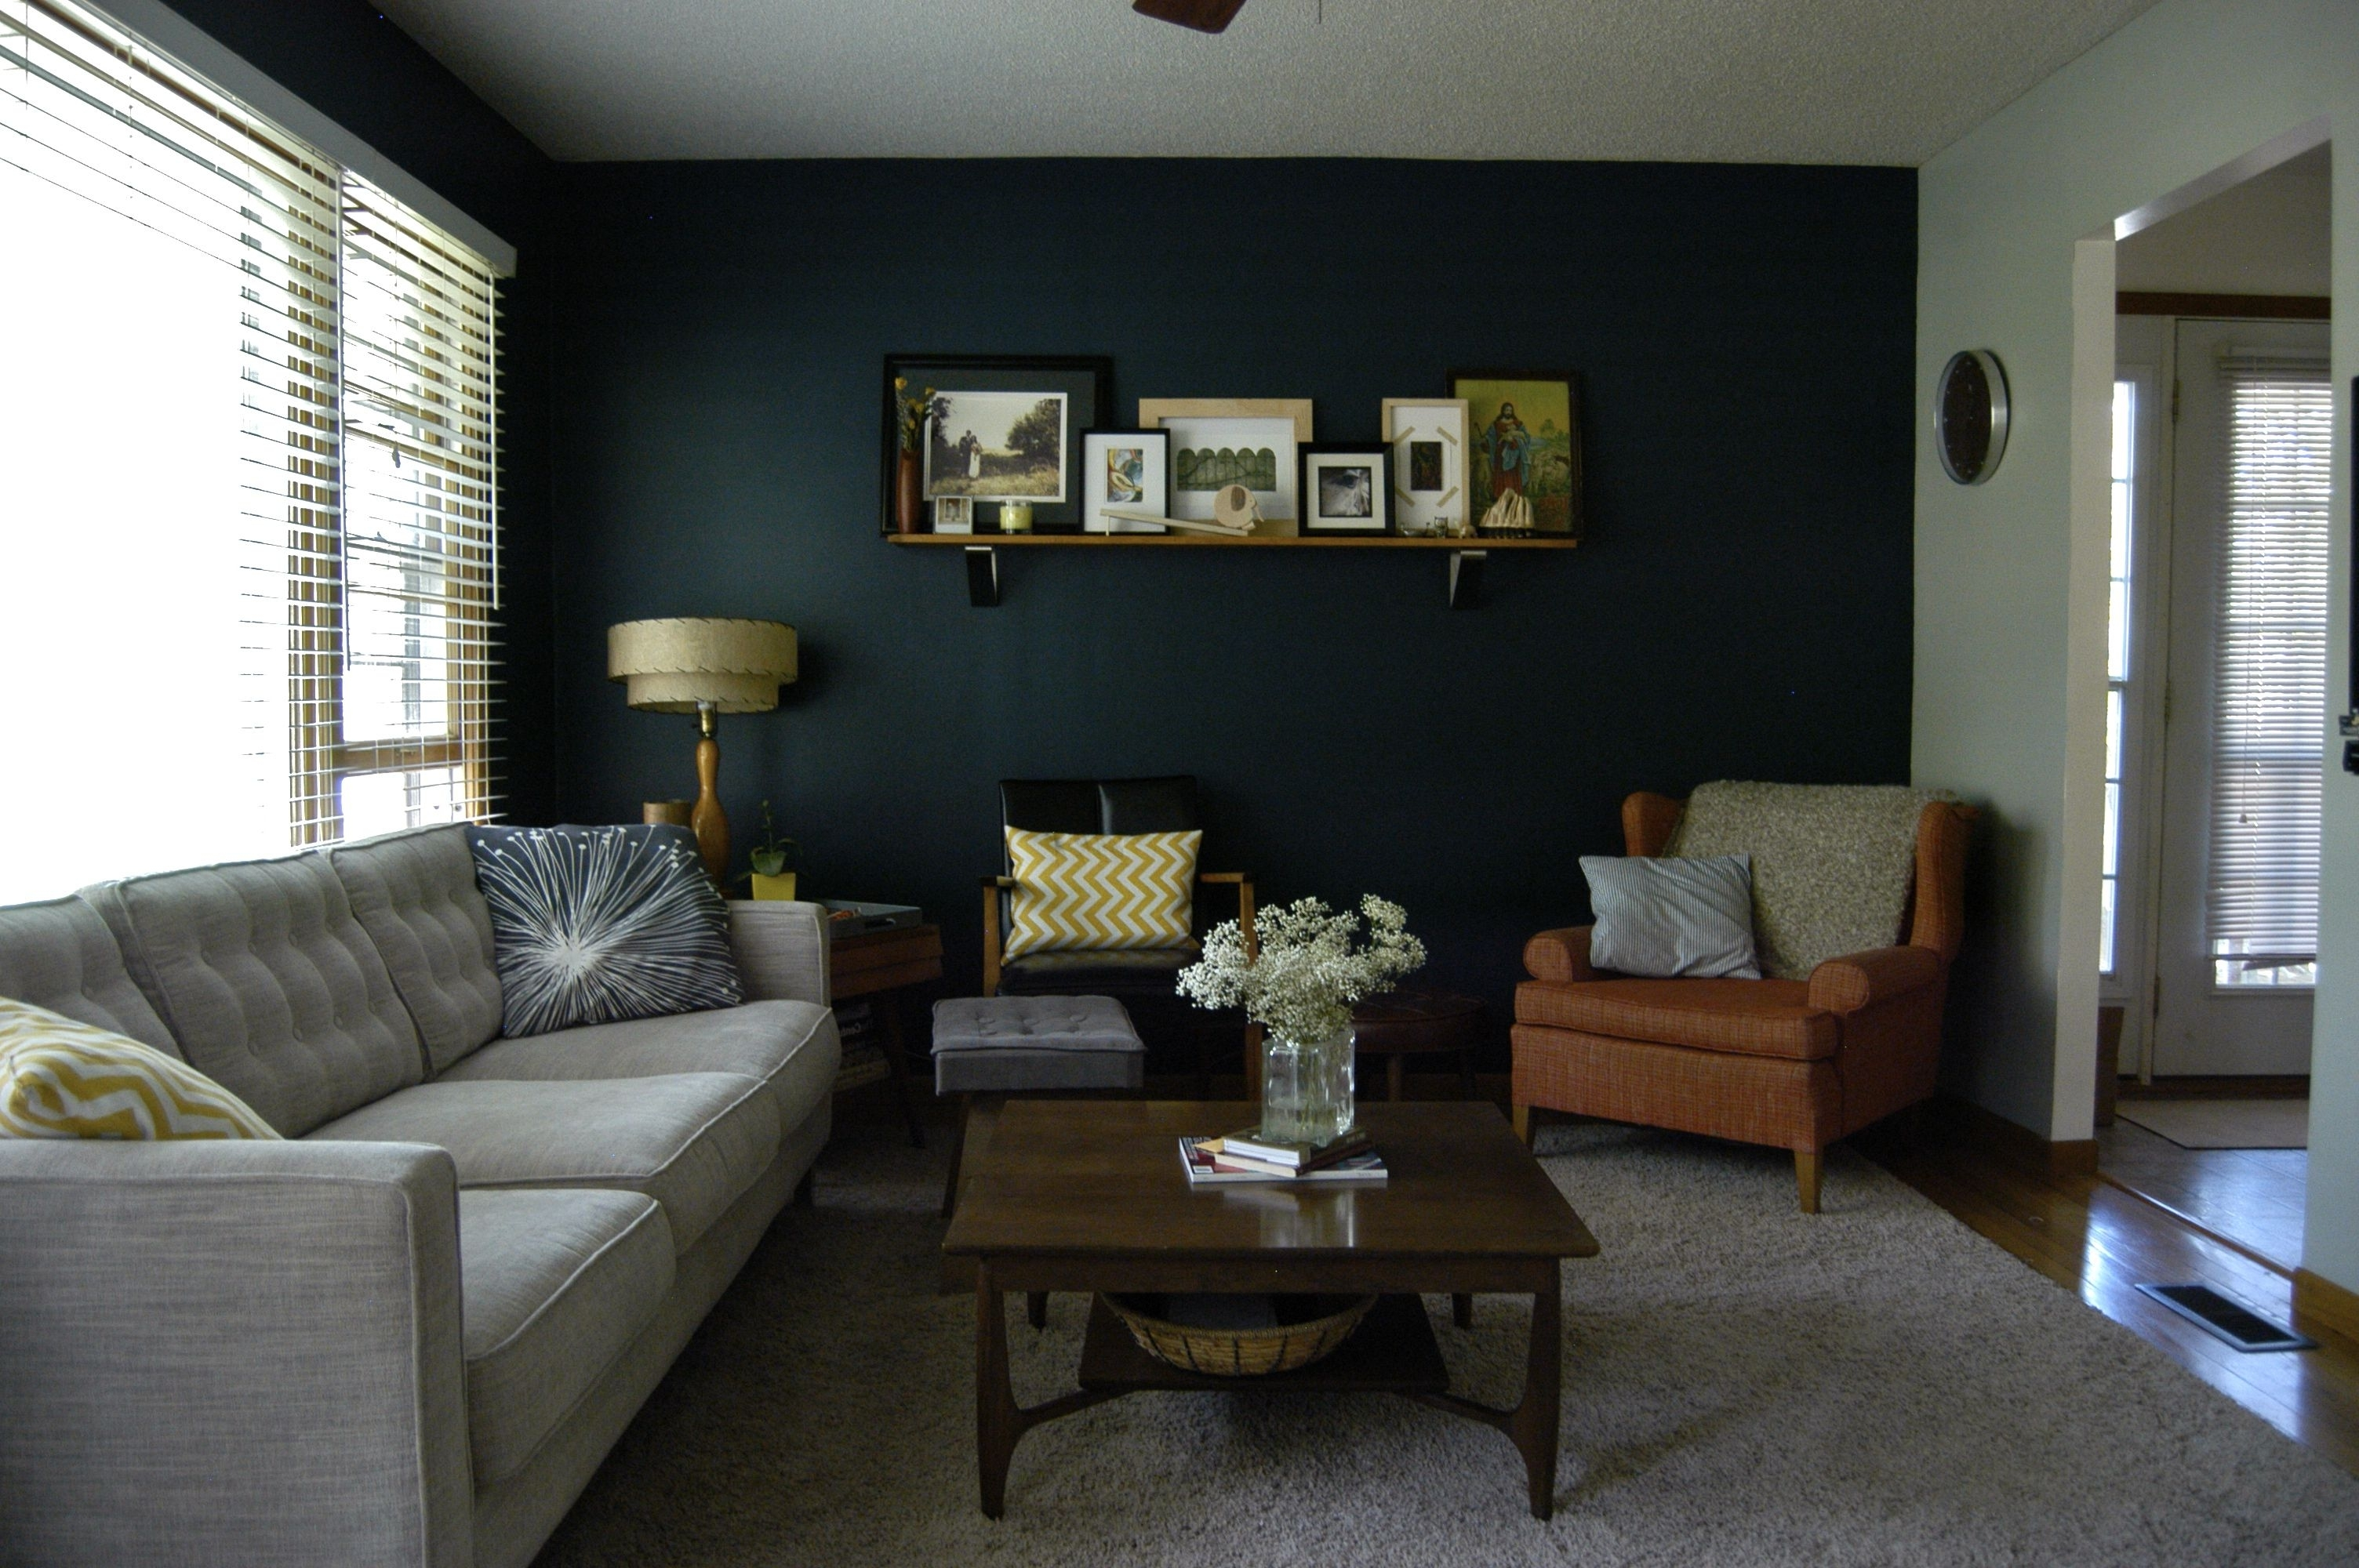 Trendy Our New Navy Accent Wall! The Other Walls Are A Medium Gray Within Gray Wall Accents (Gallery 7 of 15)